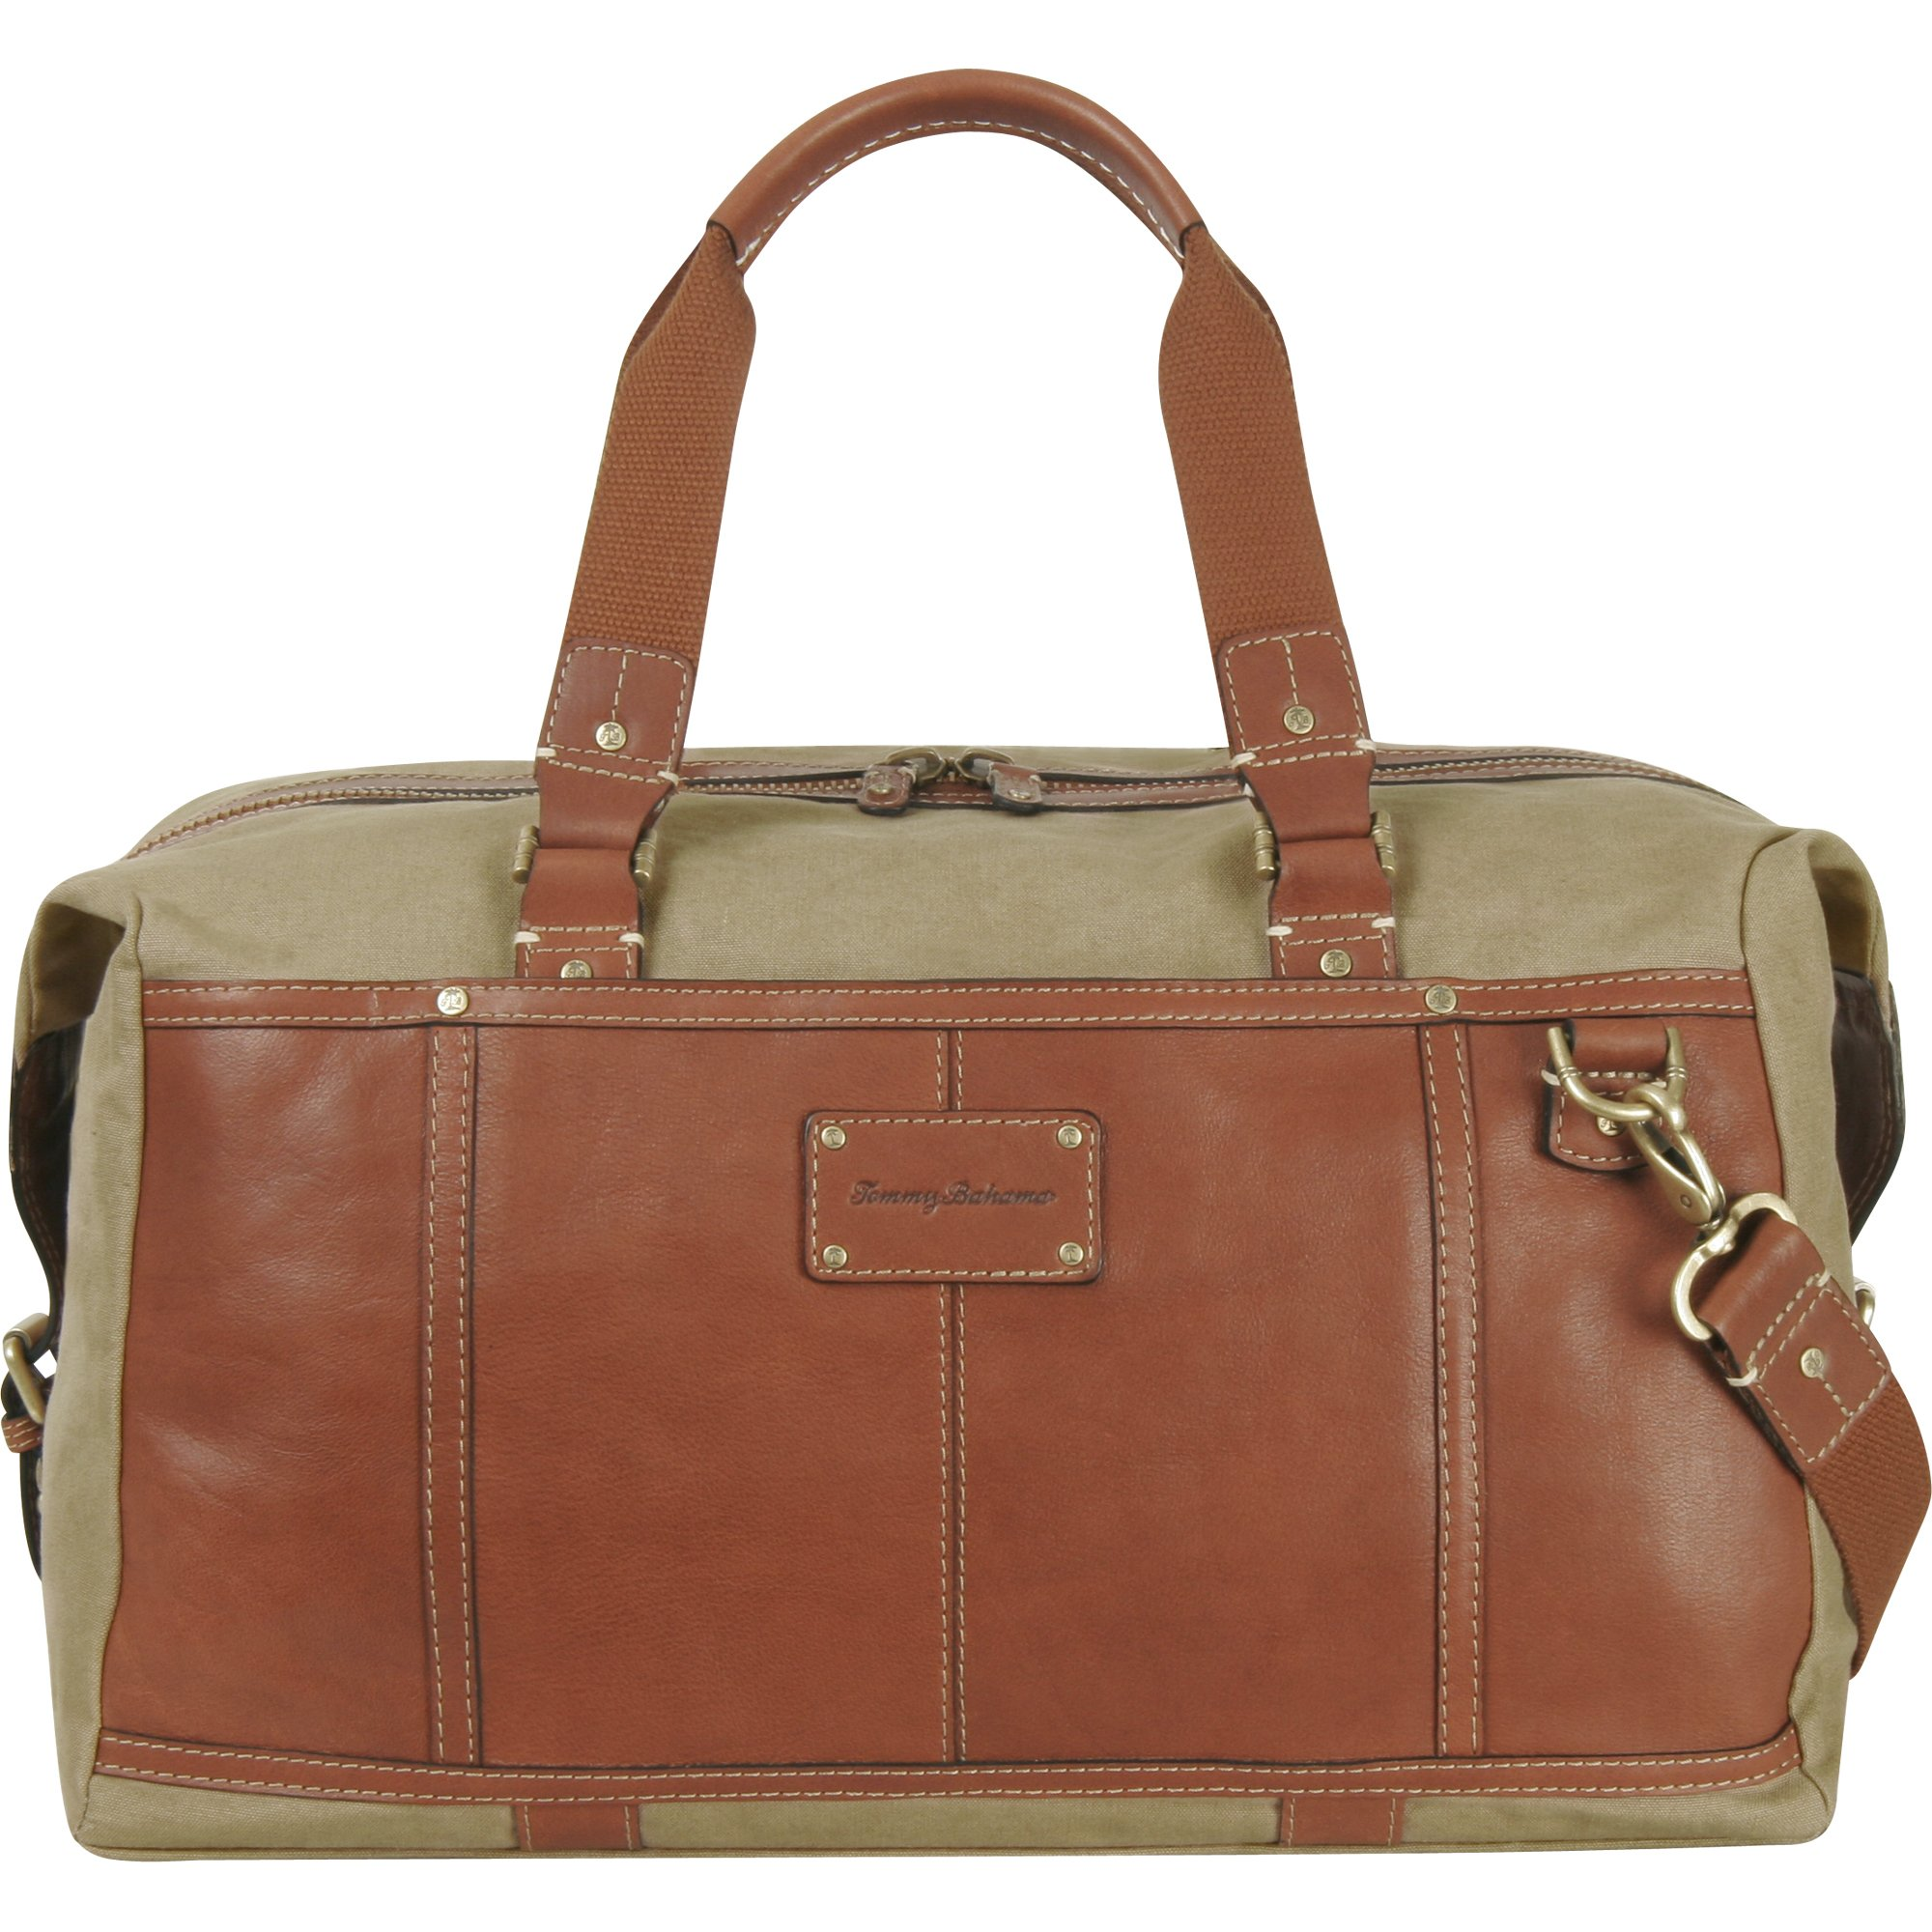 Tommy Bahama Luggage Casual Duffle Bag, Khaki/Cognac, One Size by Tommy Bahama